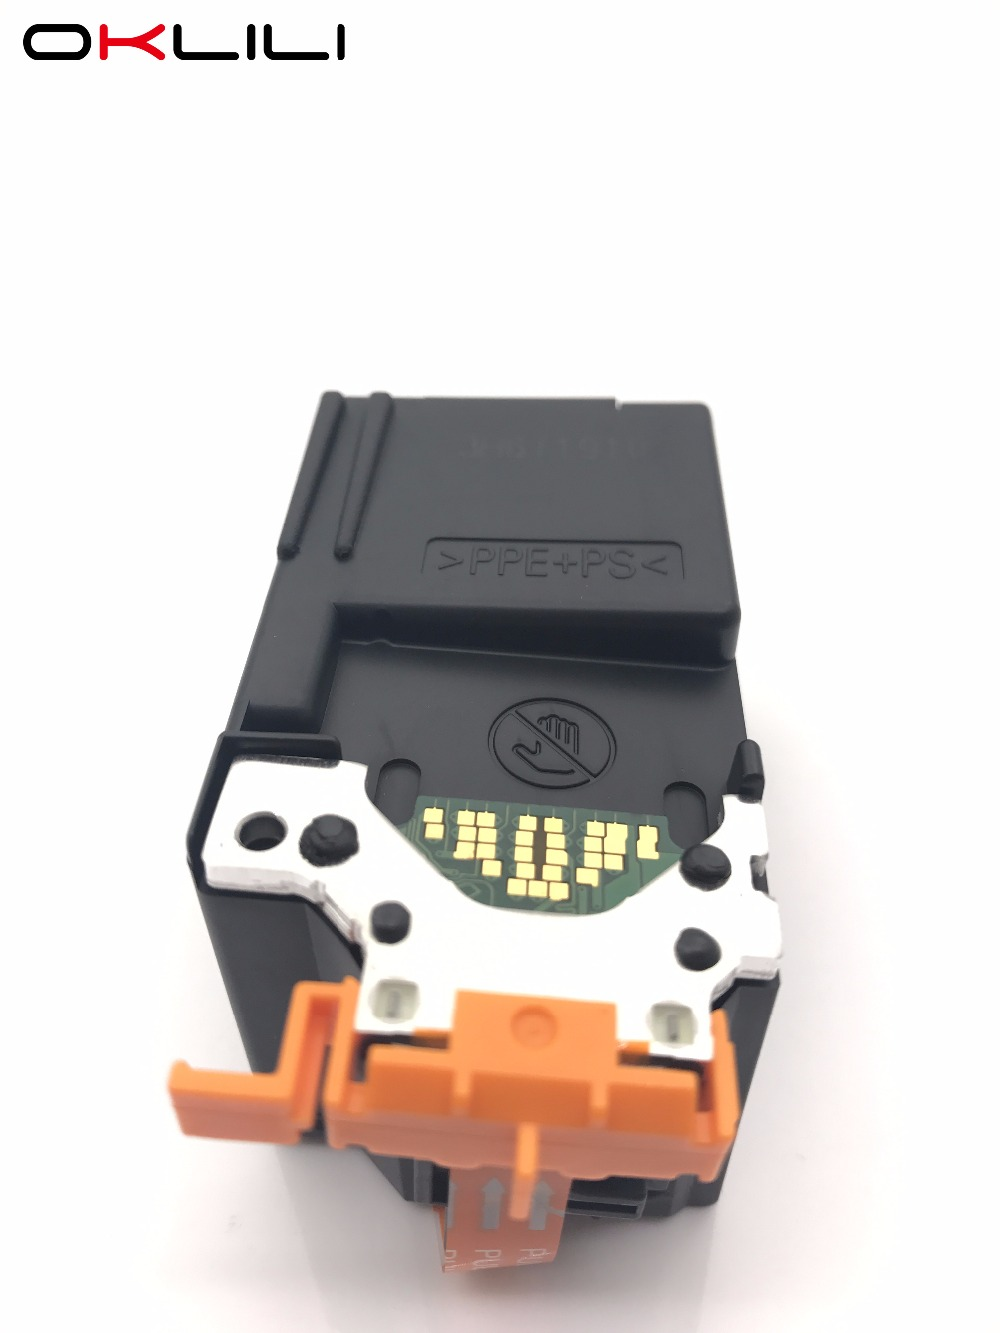 OKLILI ORIGINAL NEW QY6-0038 QY6-0038-000 Printhead Print Head Printer Head for Canon BJ S200 S200x S200SP S200SPx oklili original qy6 0045 qy6 0045 000 printhead print head printer head for canon i550 pixus 550i